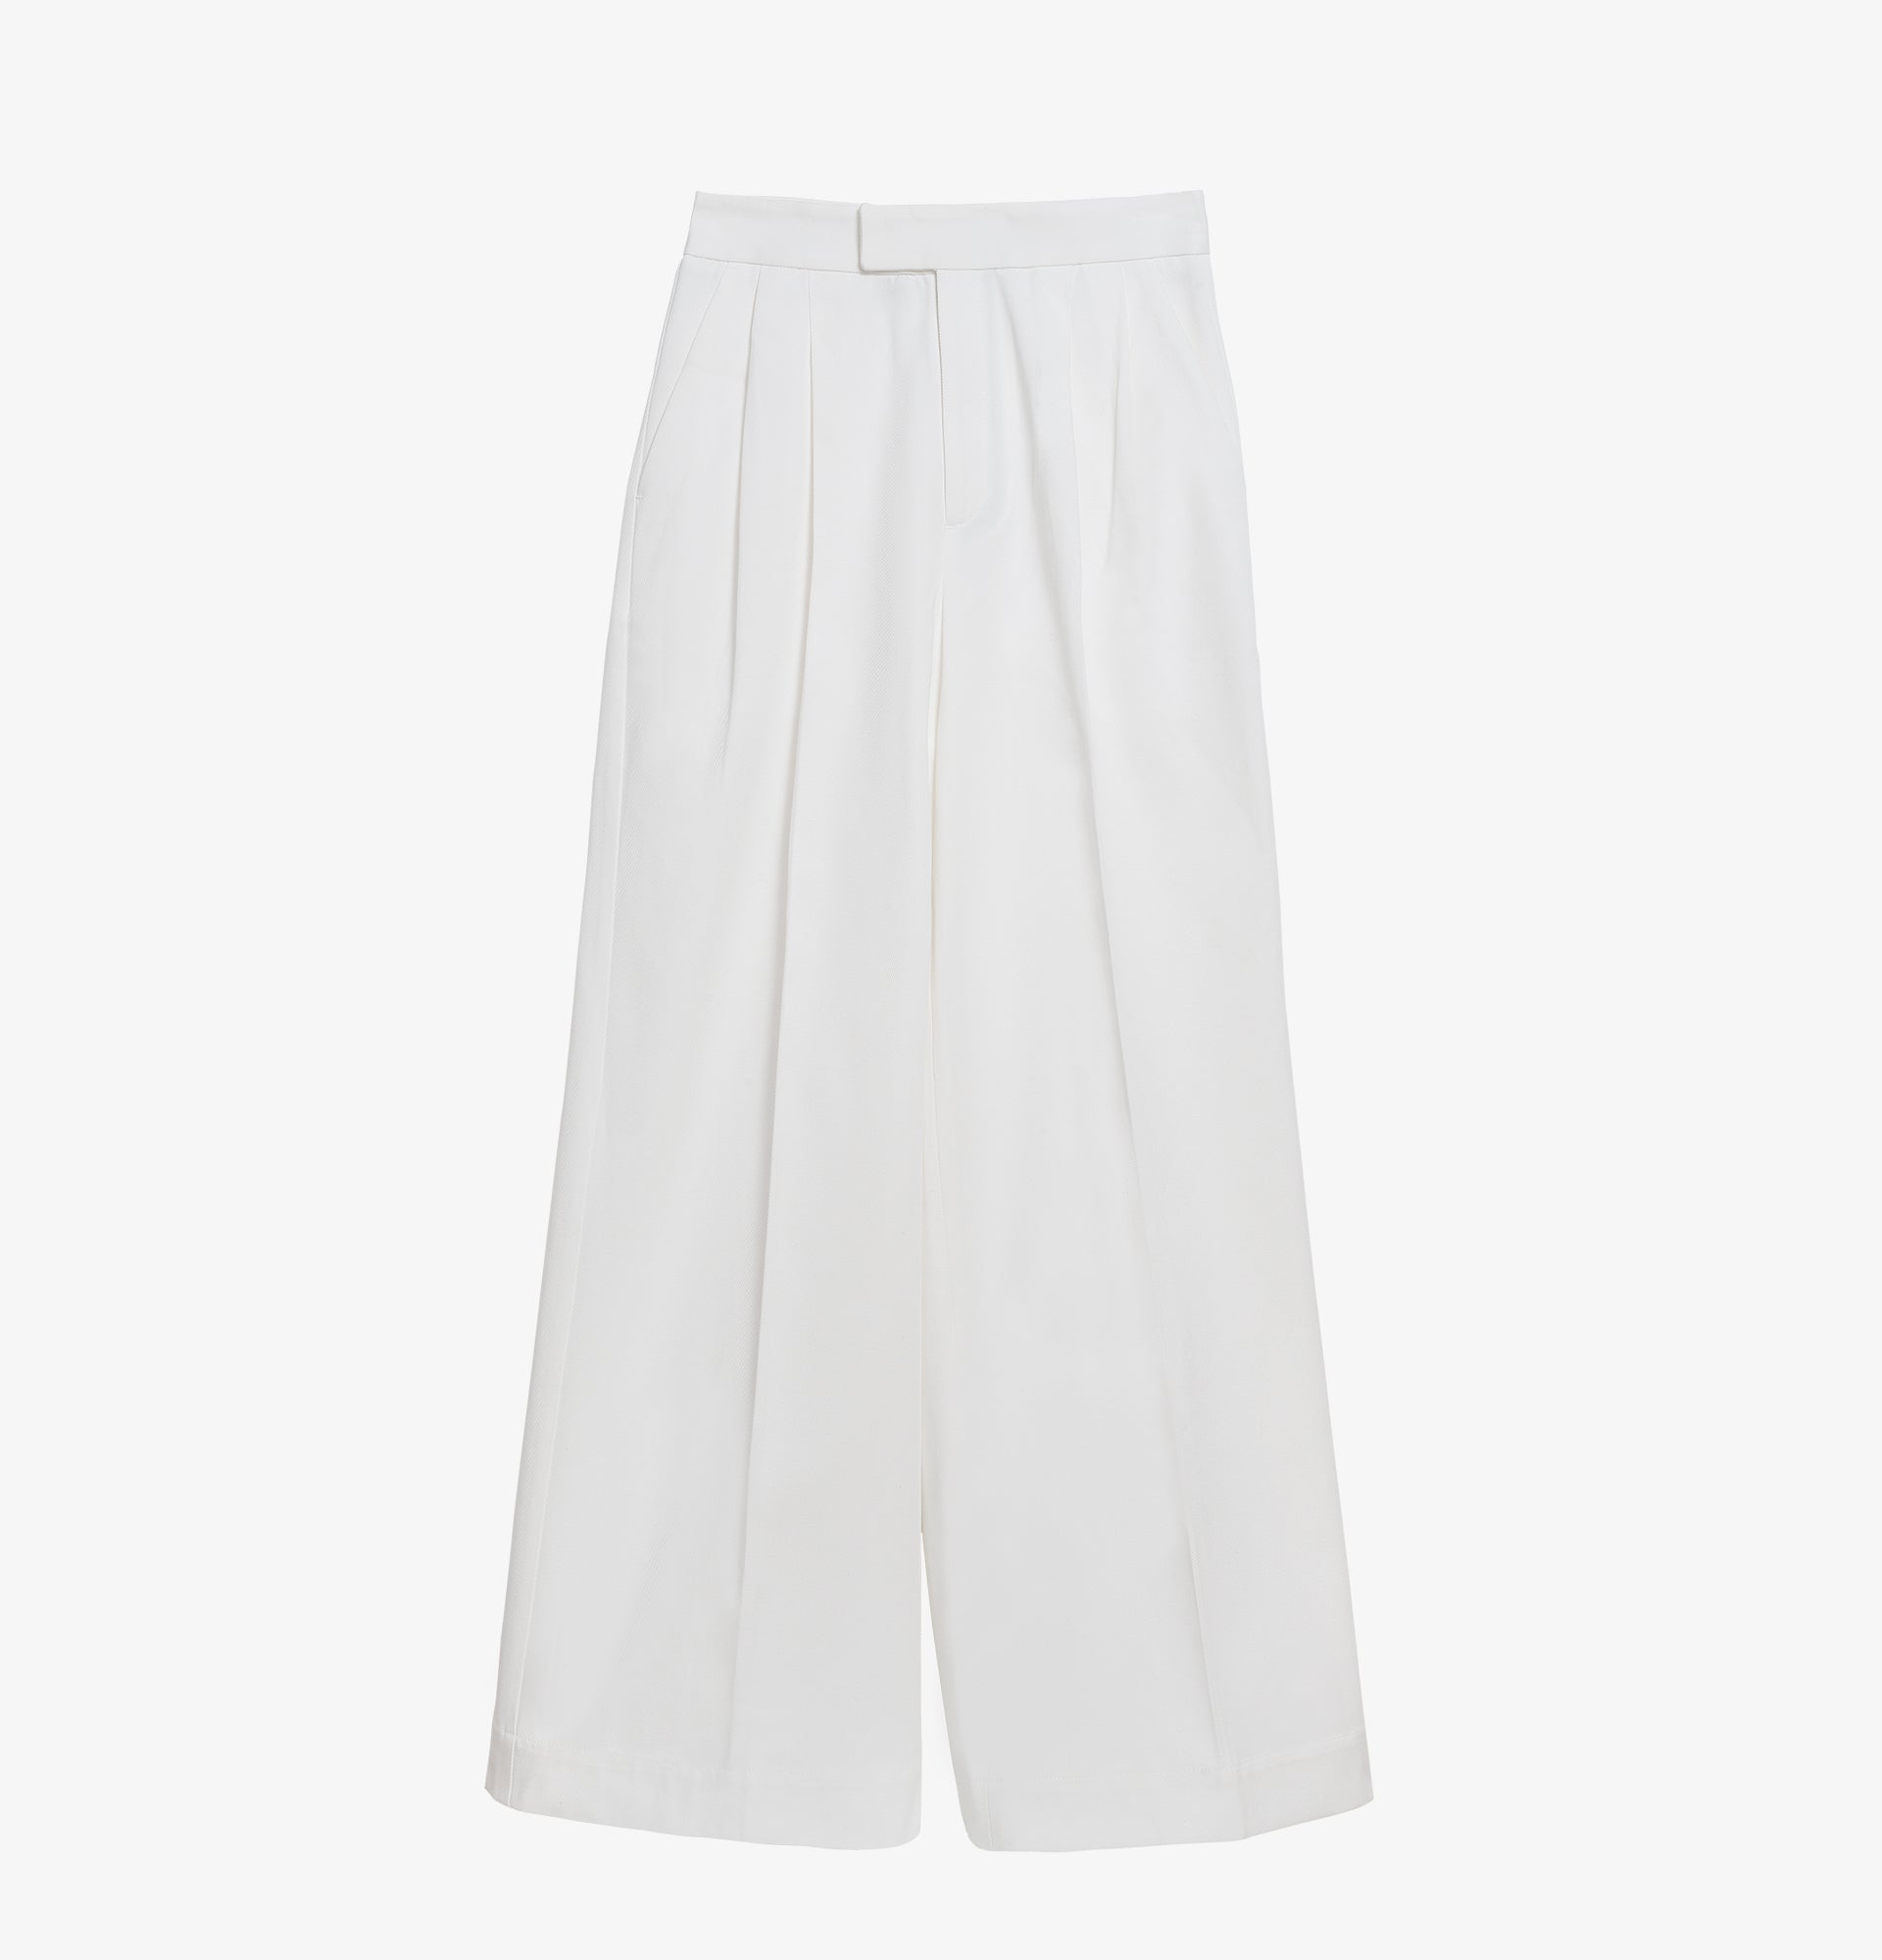 Joplin Flared Cotton Pants White